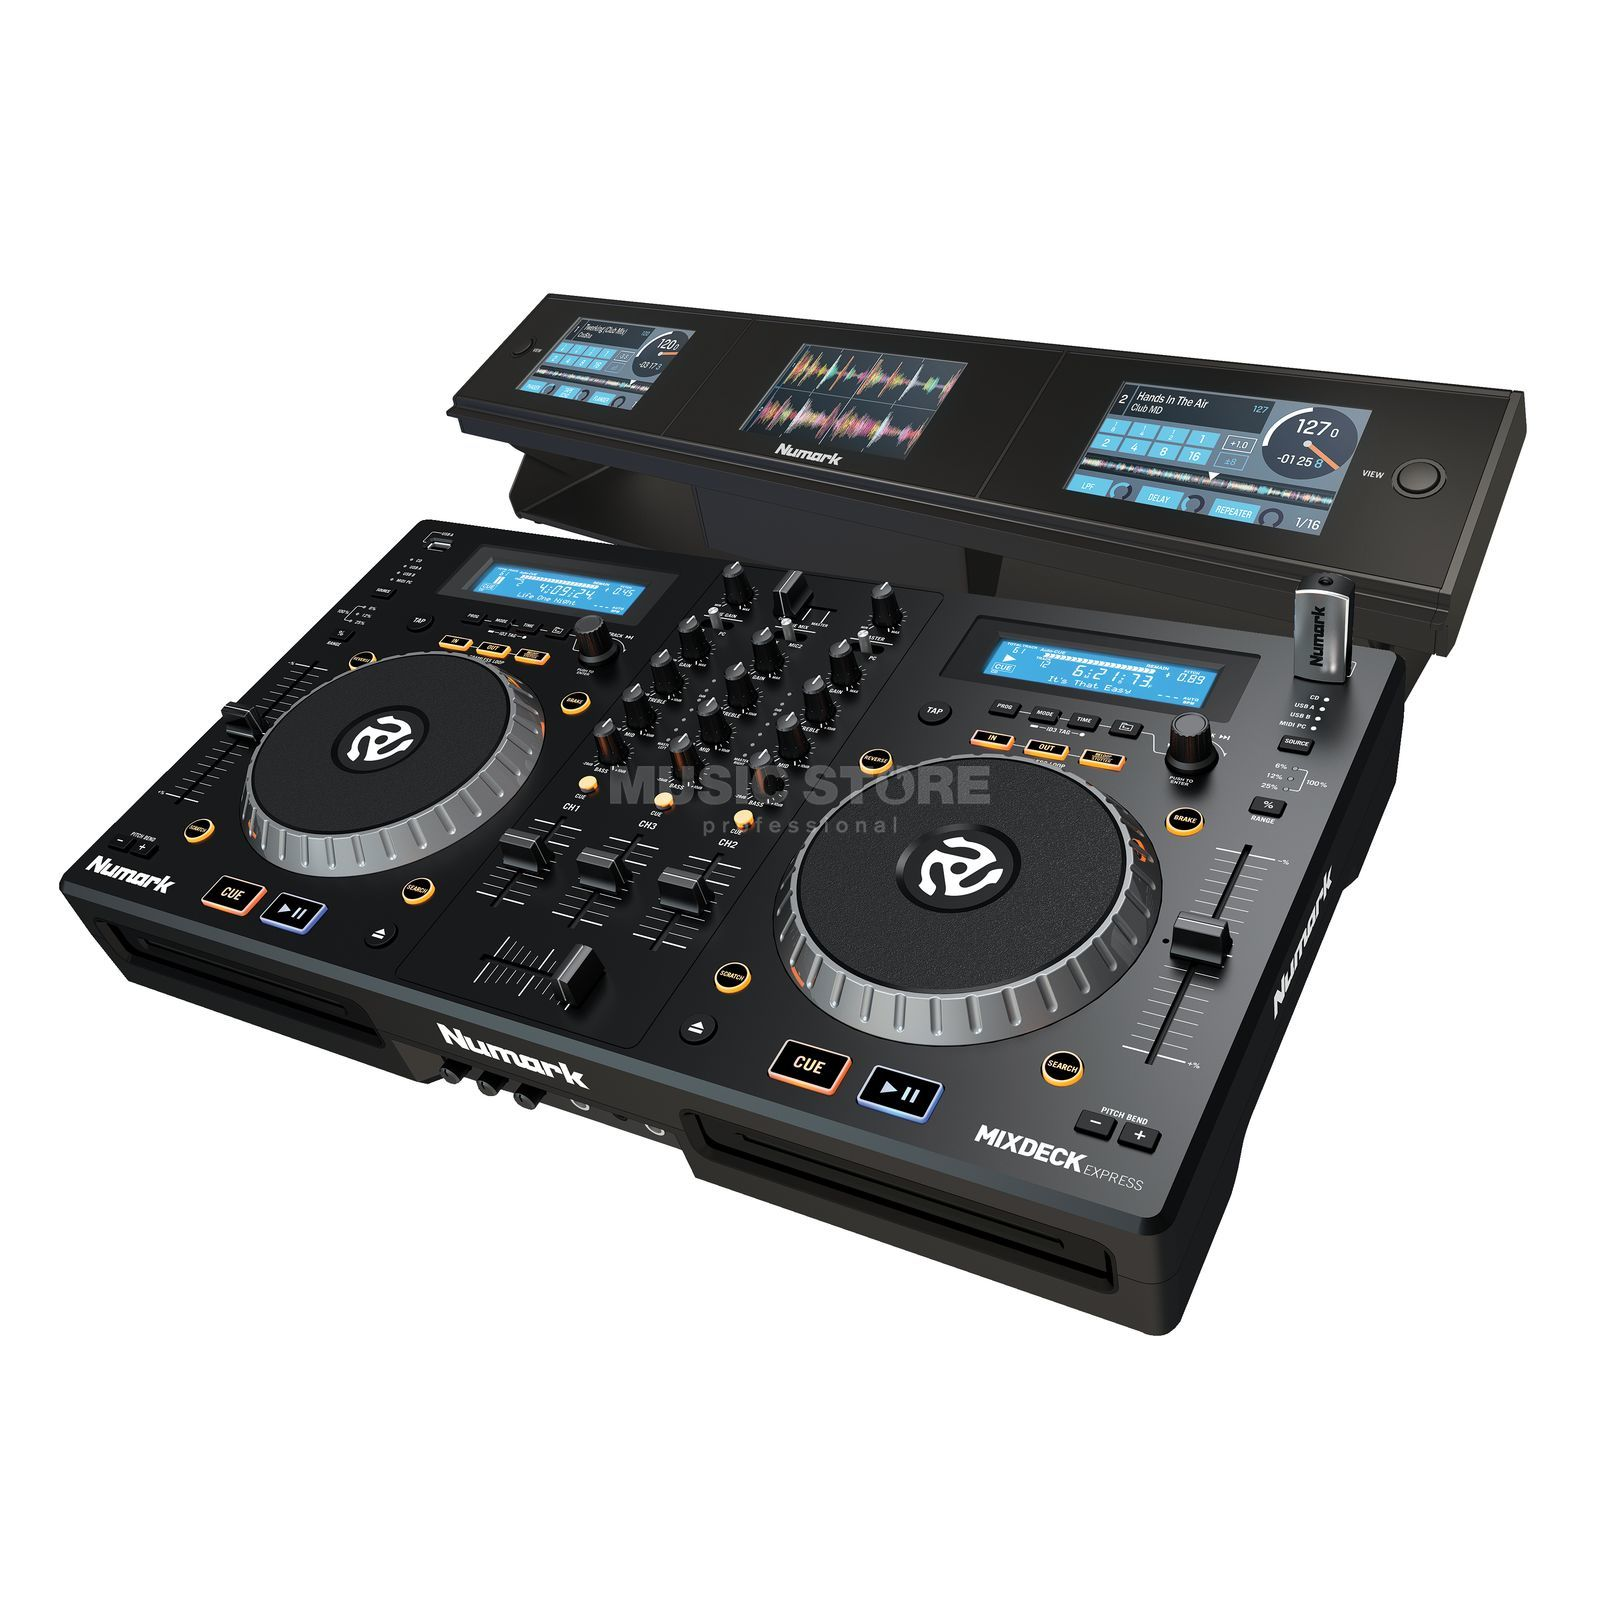 Numark Mixdeck Express Black + Dashboard - Set Product Image